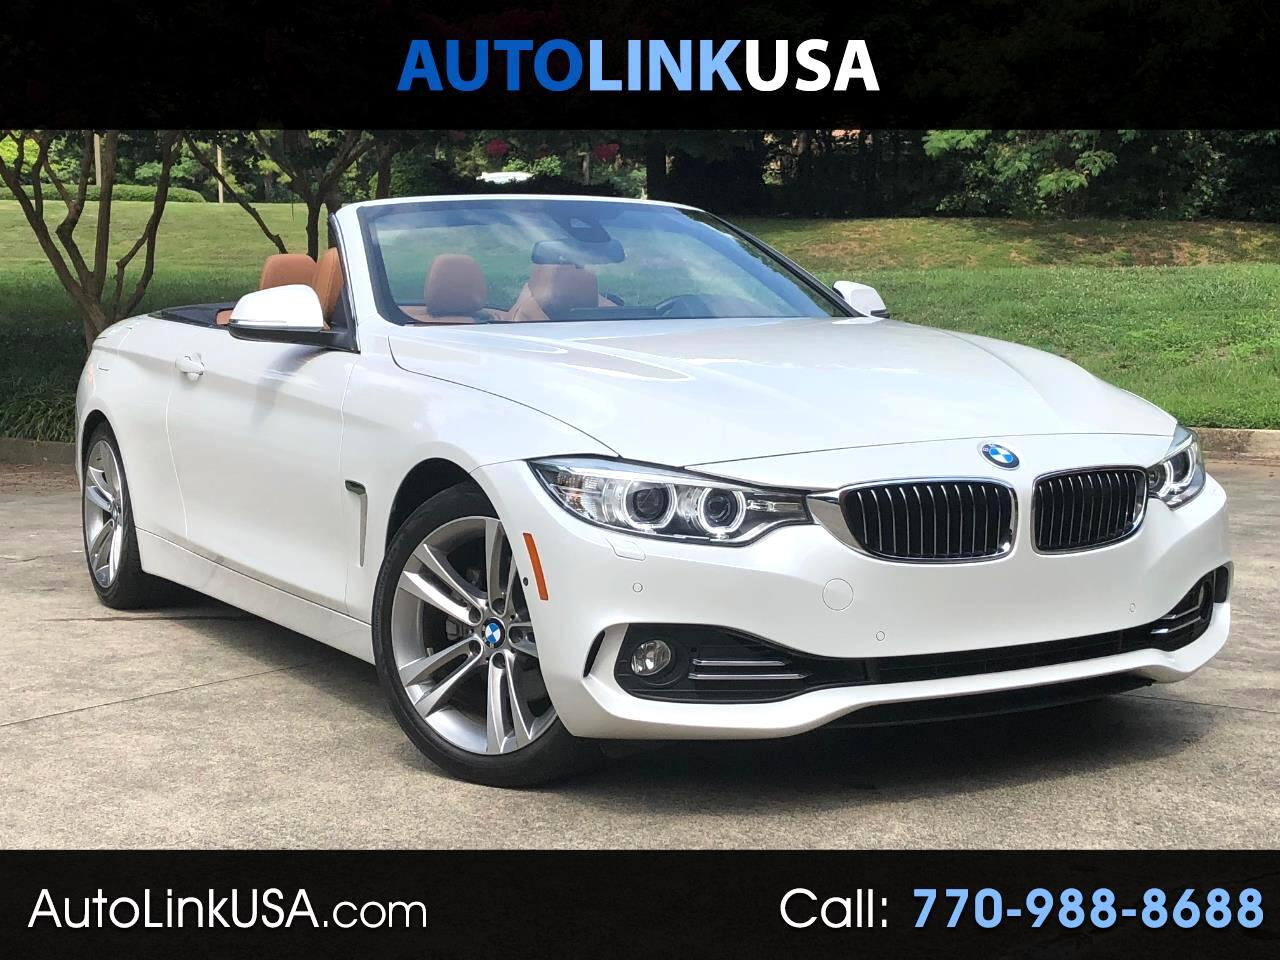 2017 BMW 4-Series 430I Luxury Convertible